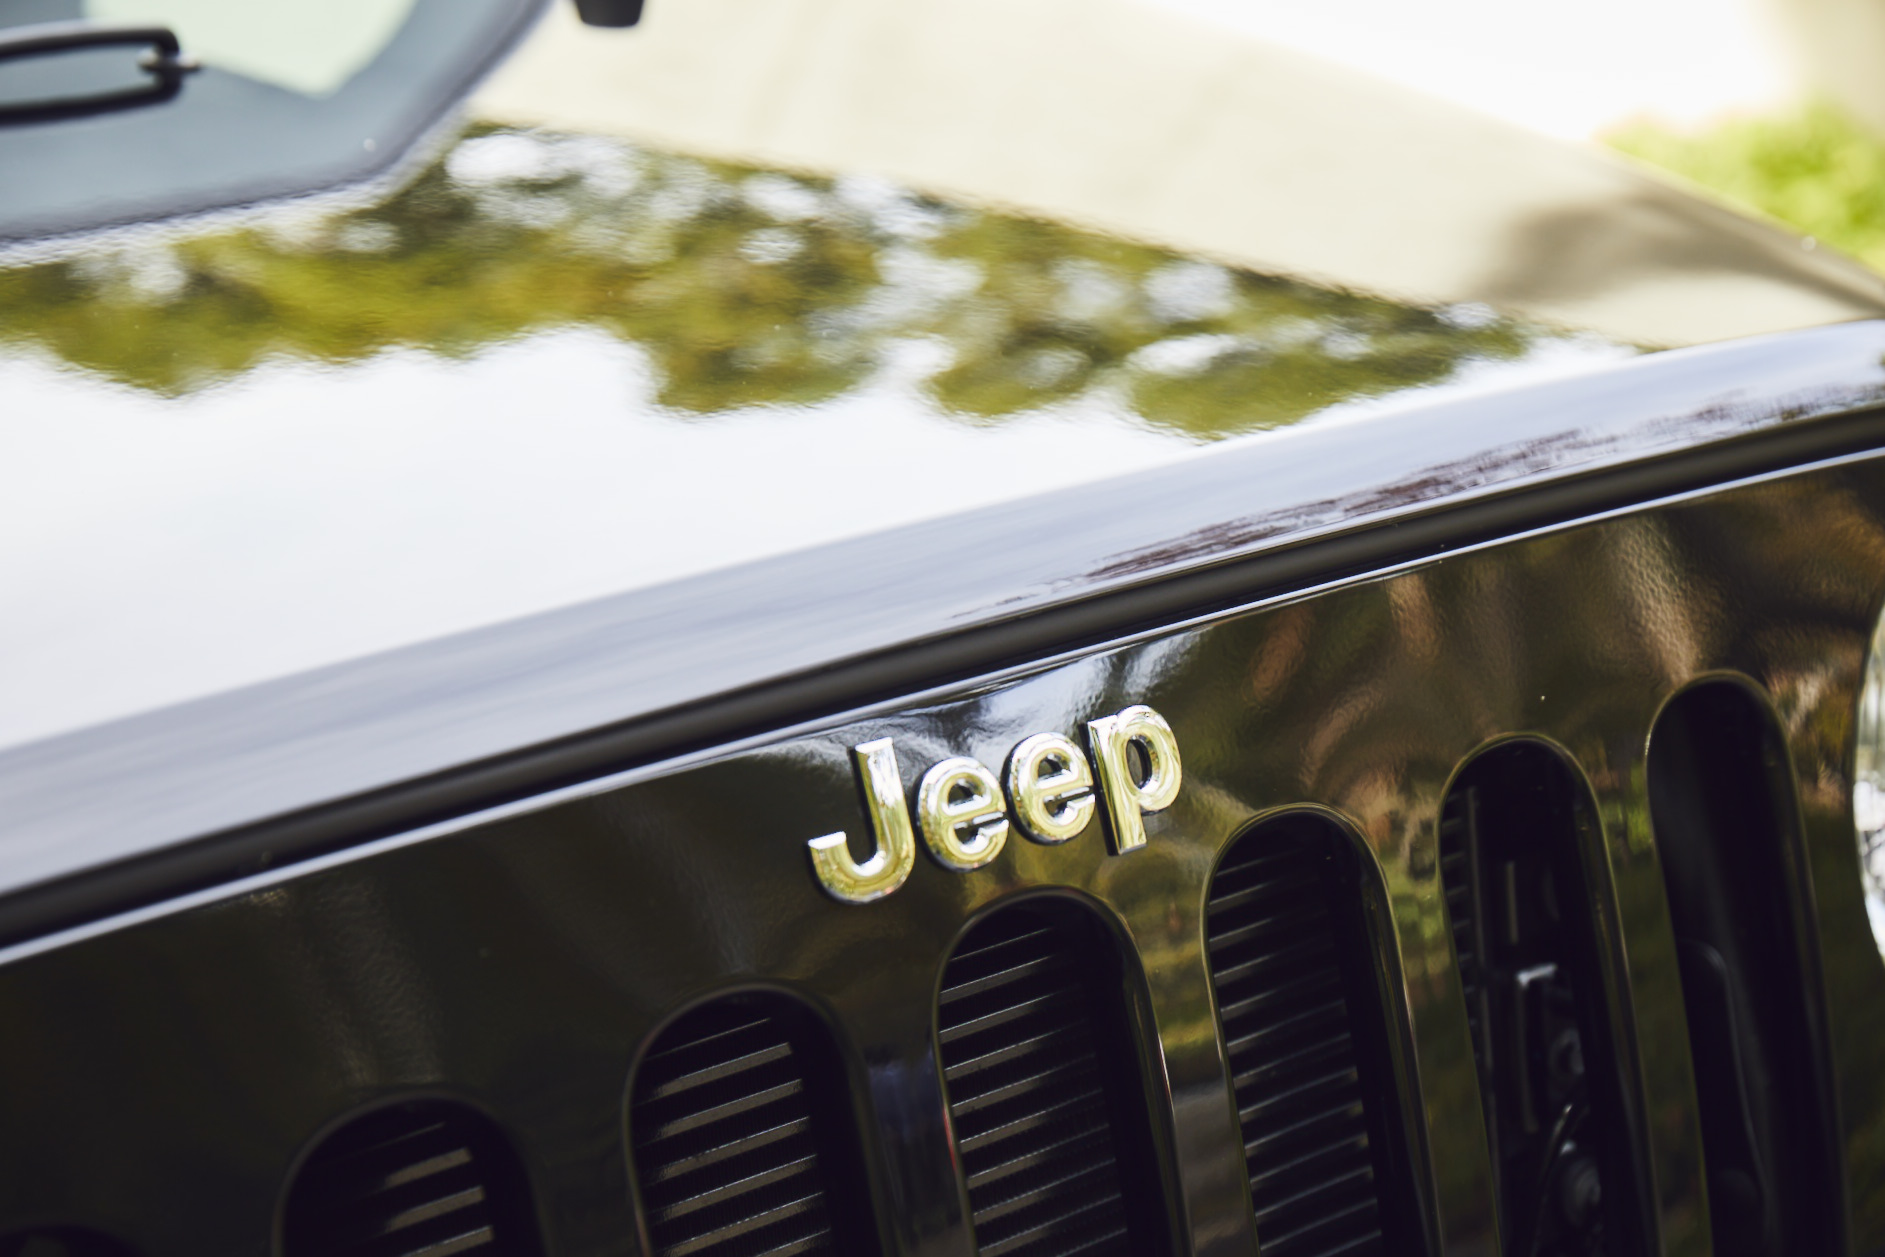 ho_104155 My Jeep®,My Life. ボクとJeep®の暮らしかた。女優・太田莉菜